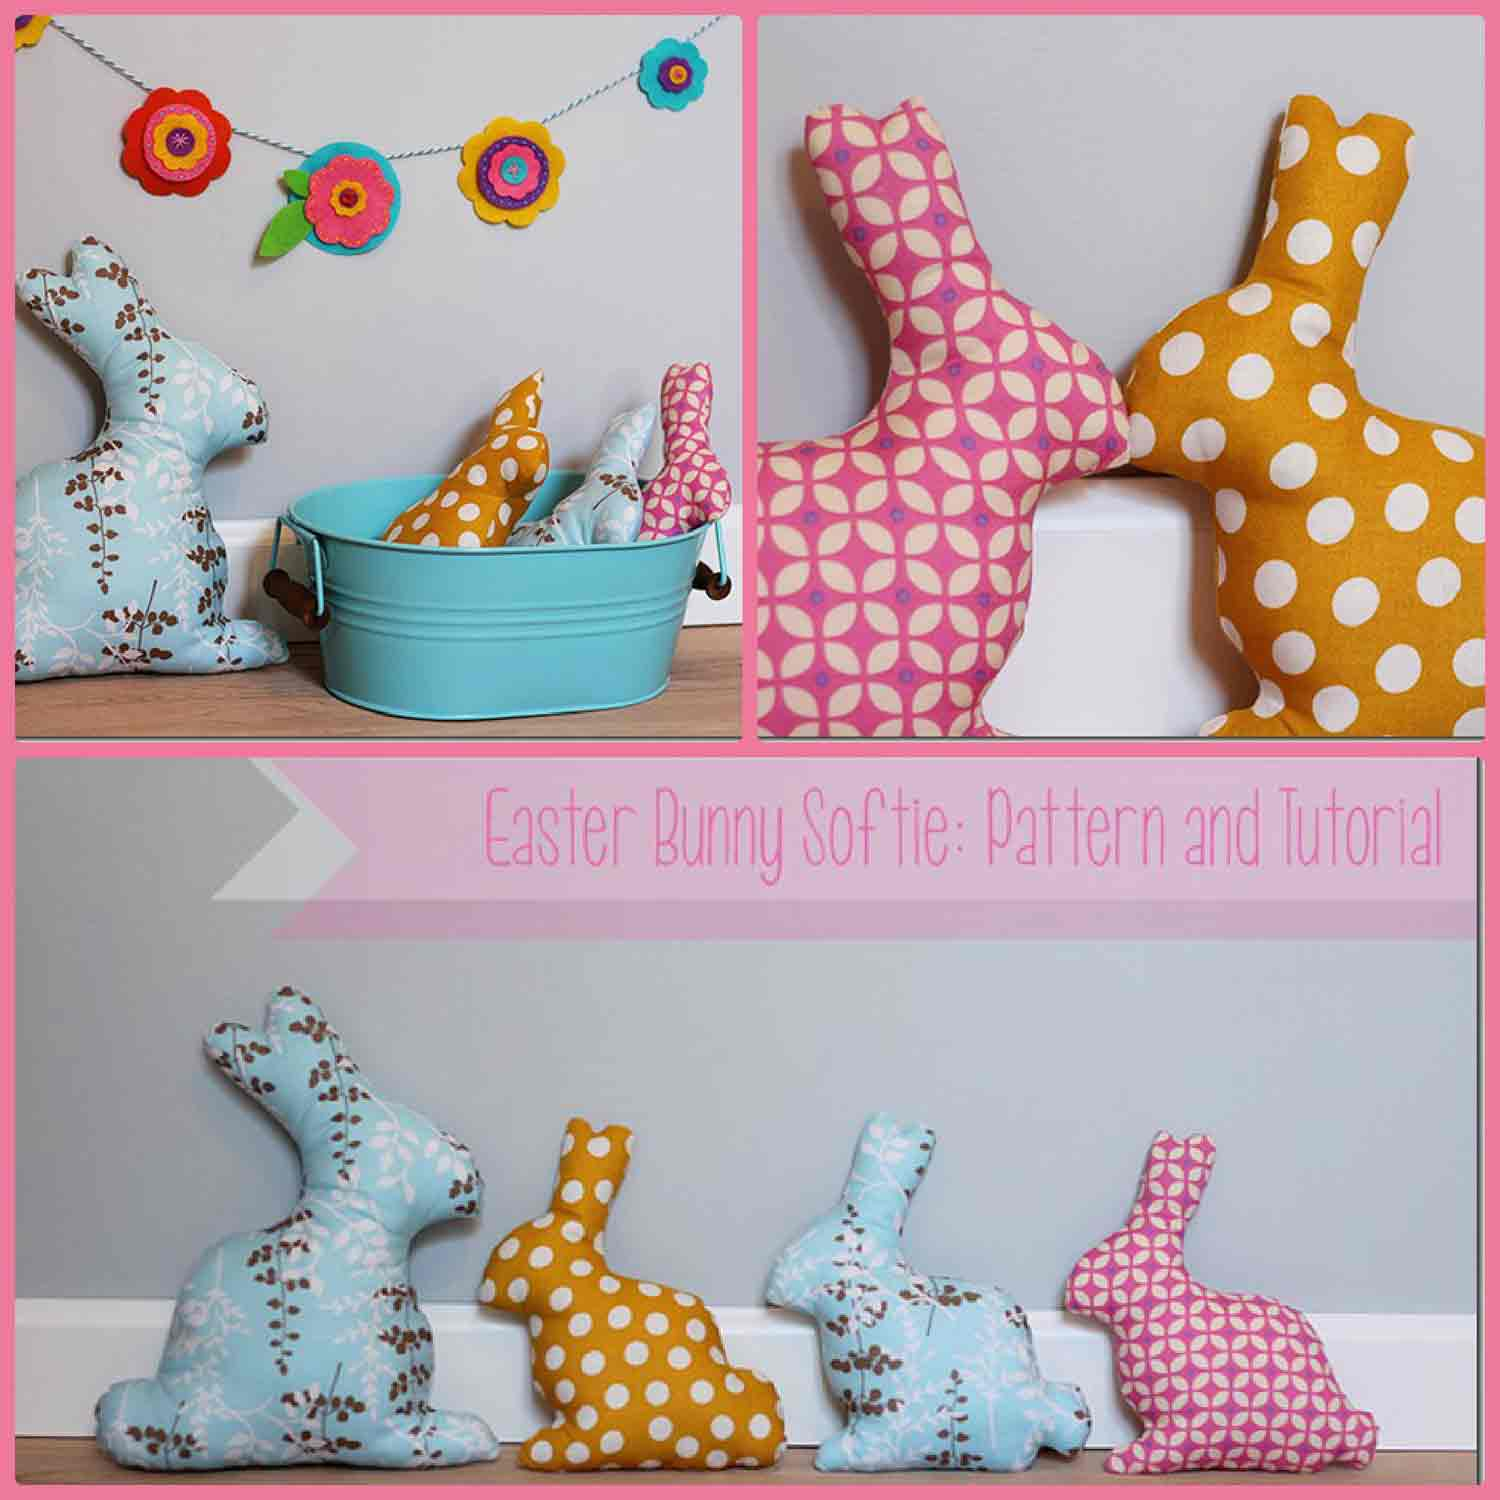 The Crafty Cupboard - Bunny Softies with Free Template